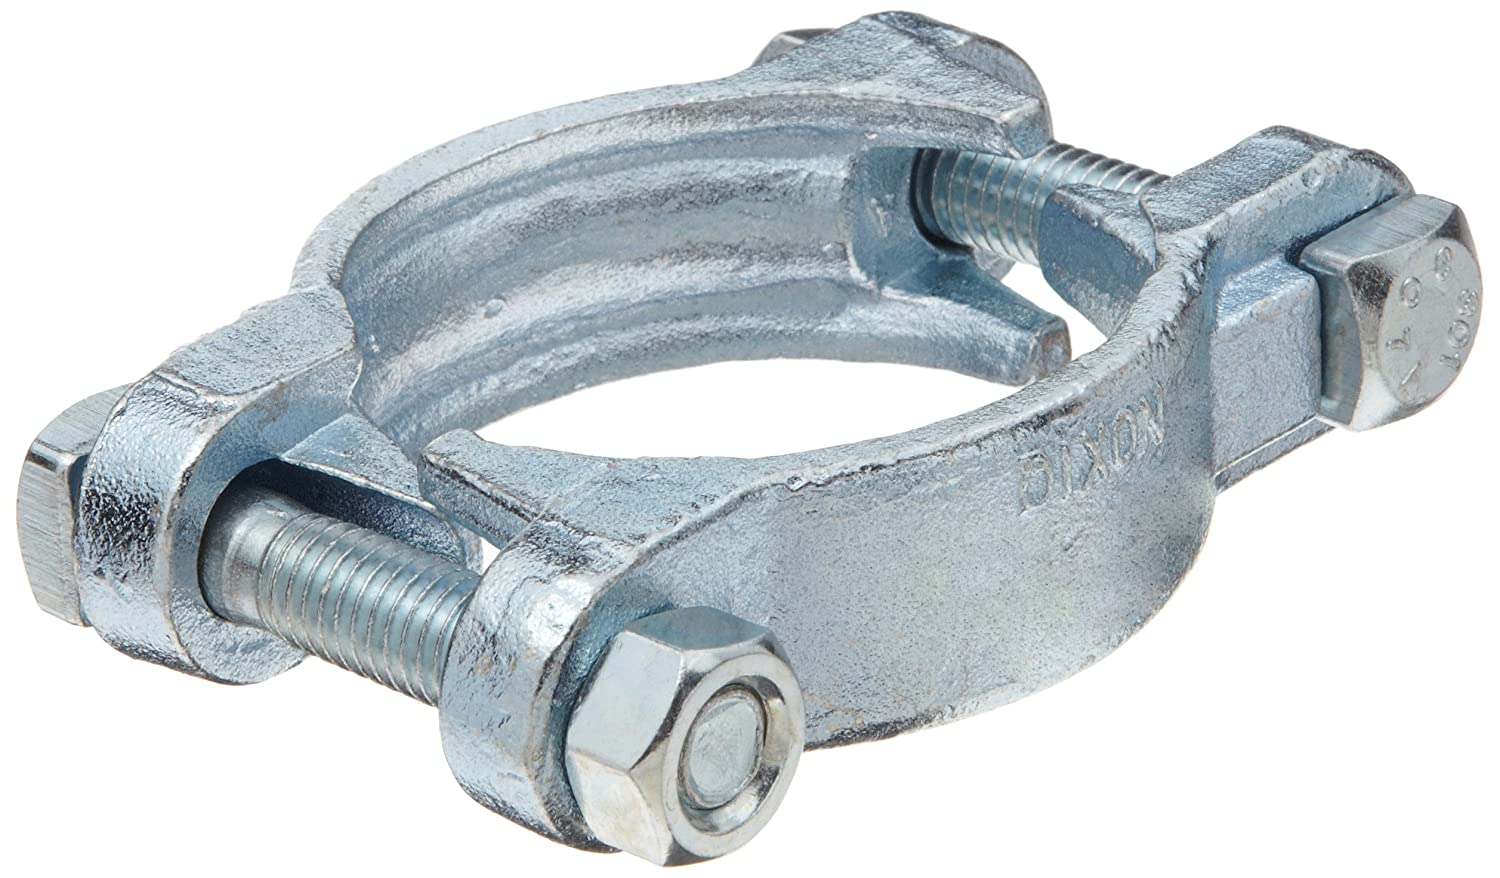 0.748 Closed x 0.906 Open Range, Dixon 2023 Zinc Plated Steel Double-Ear Pinch-On Hose Clamp 7//8 Diameter Pack of 100